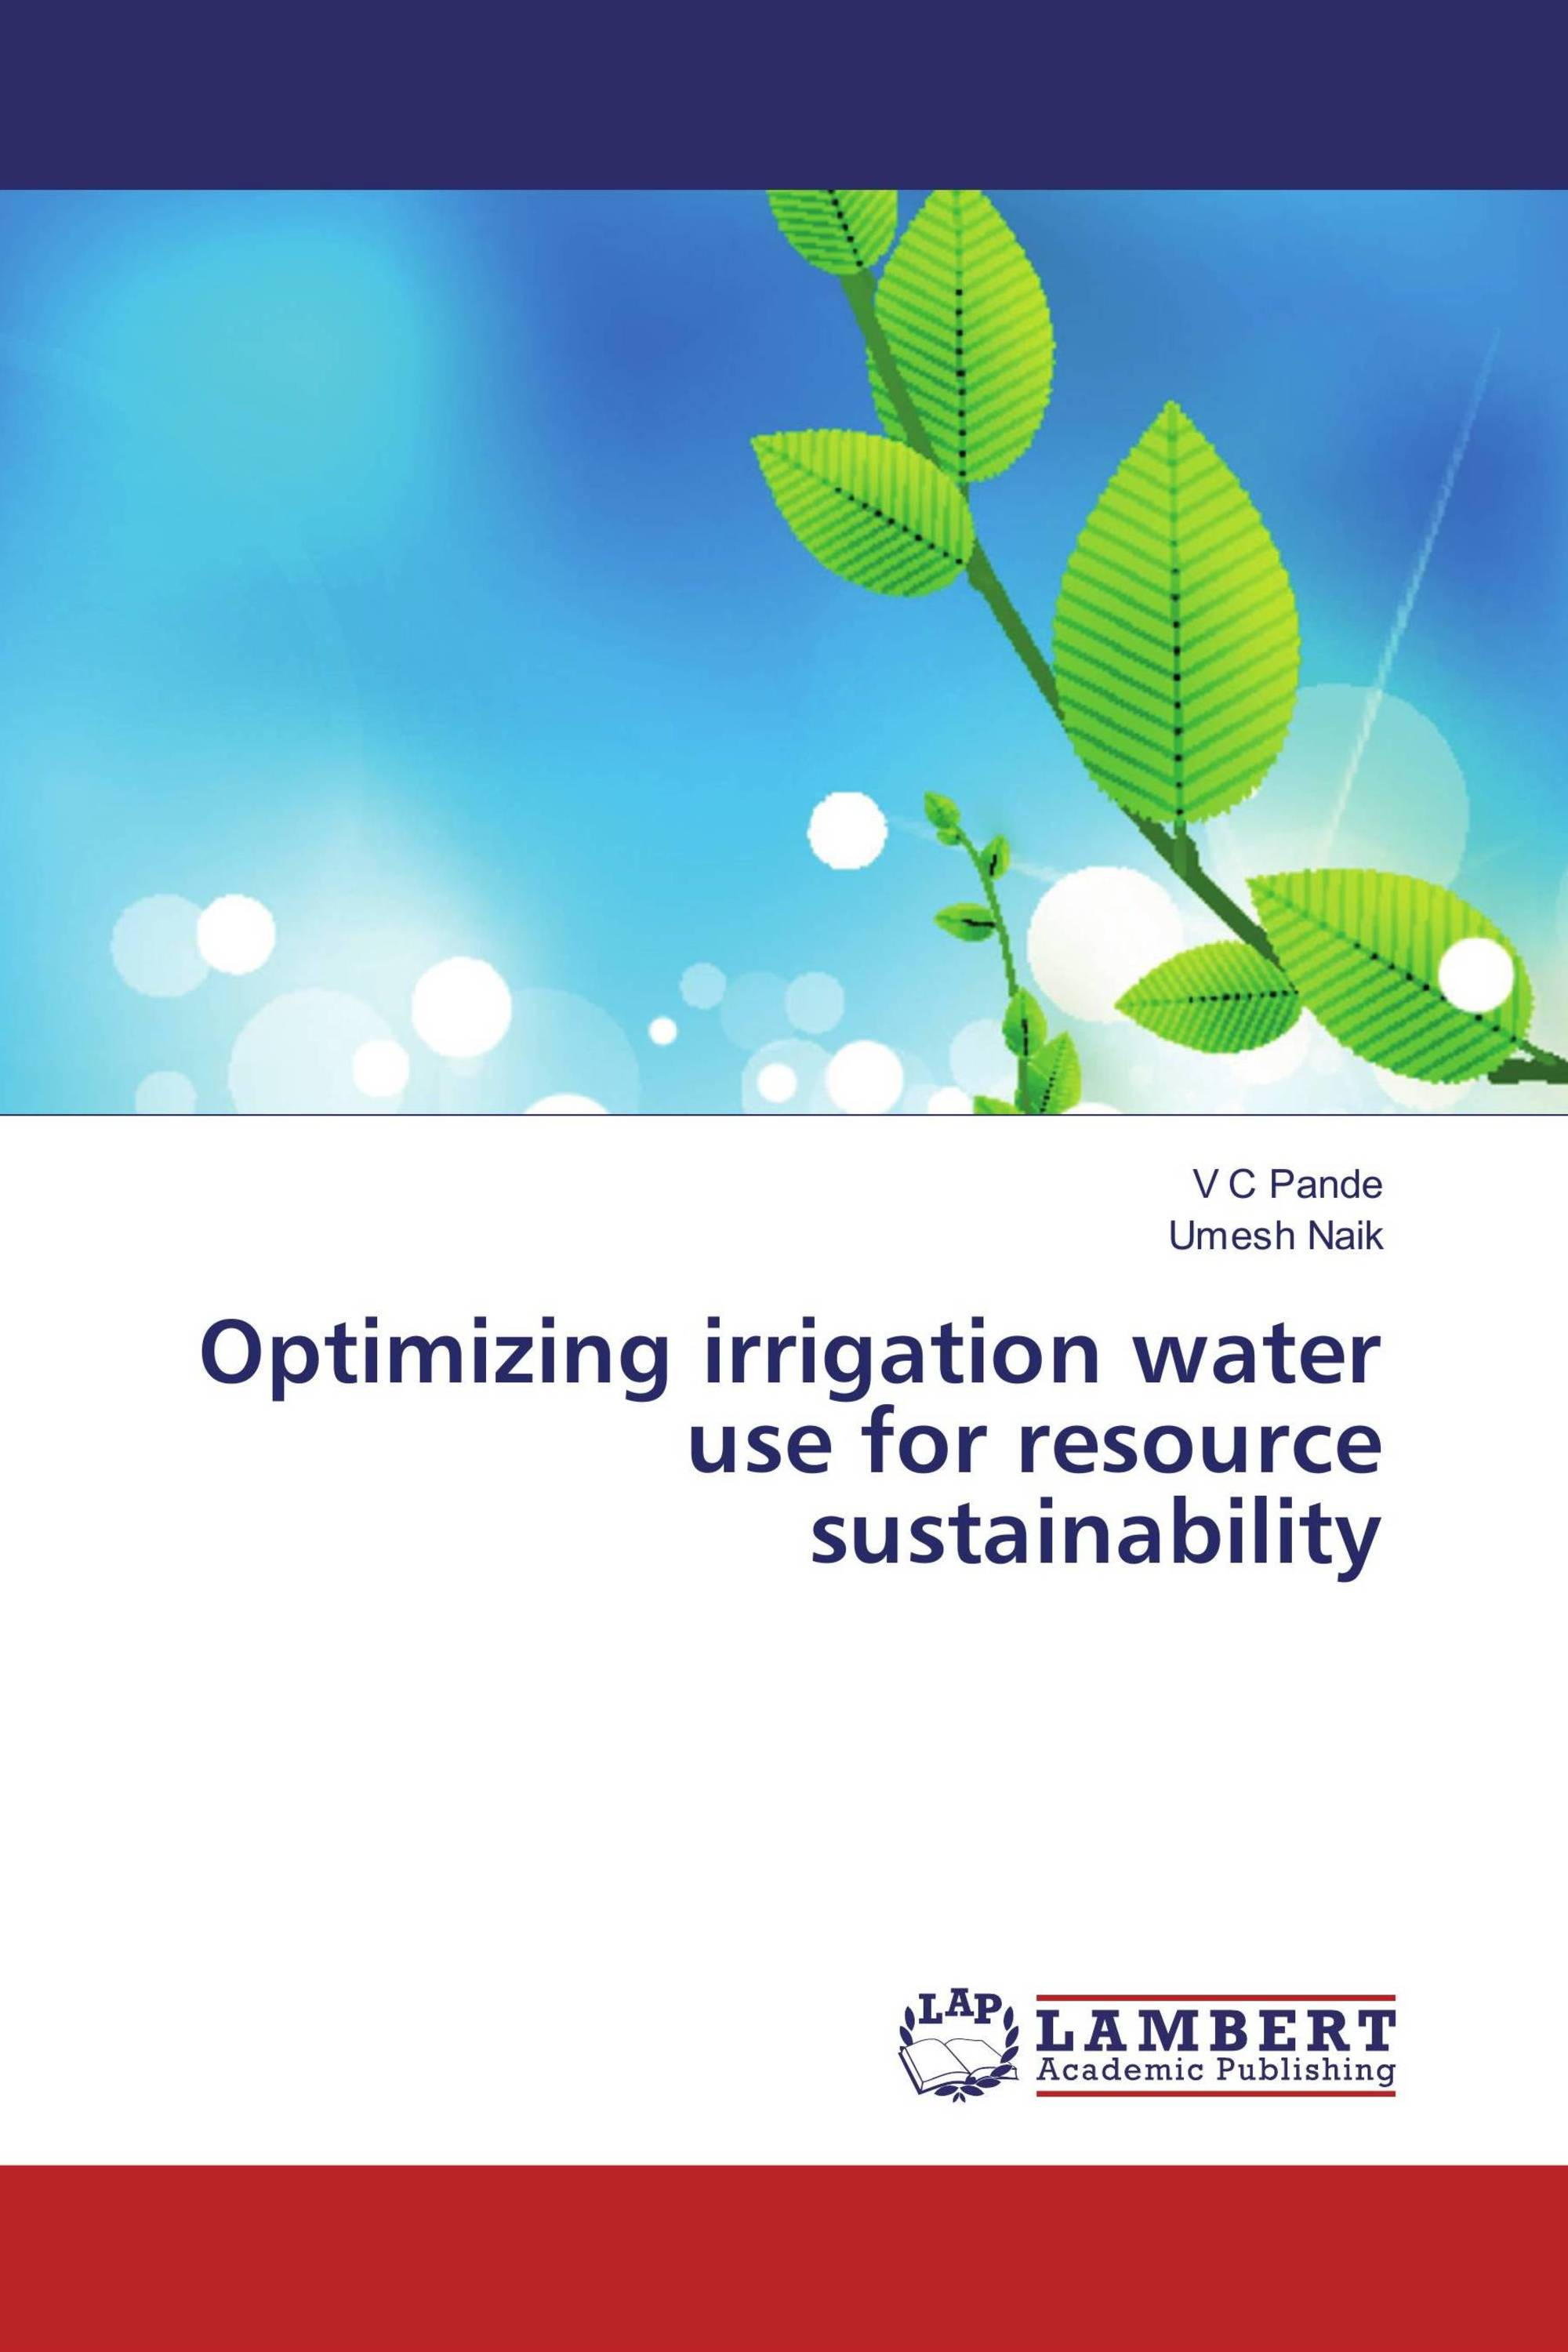 Optimizing irrigation water use for resource sustainability